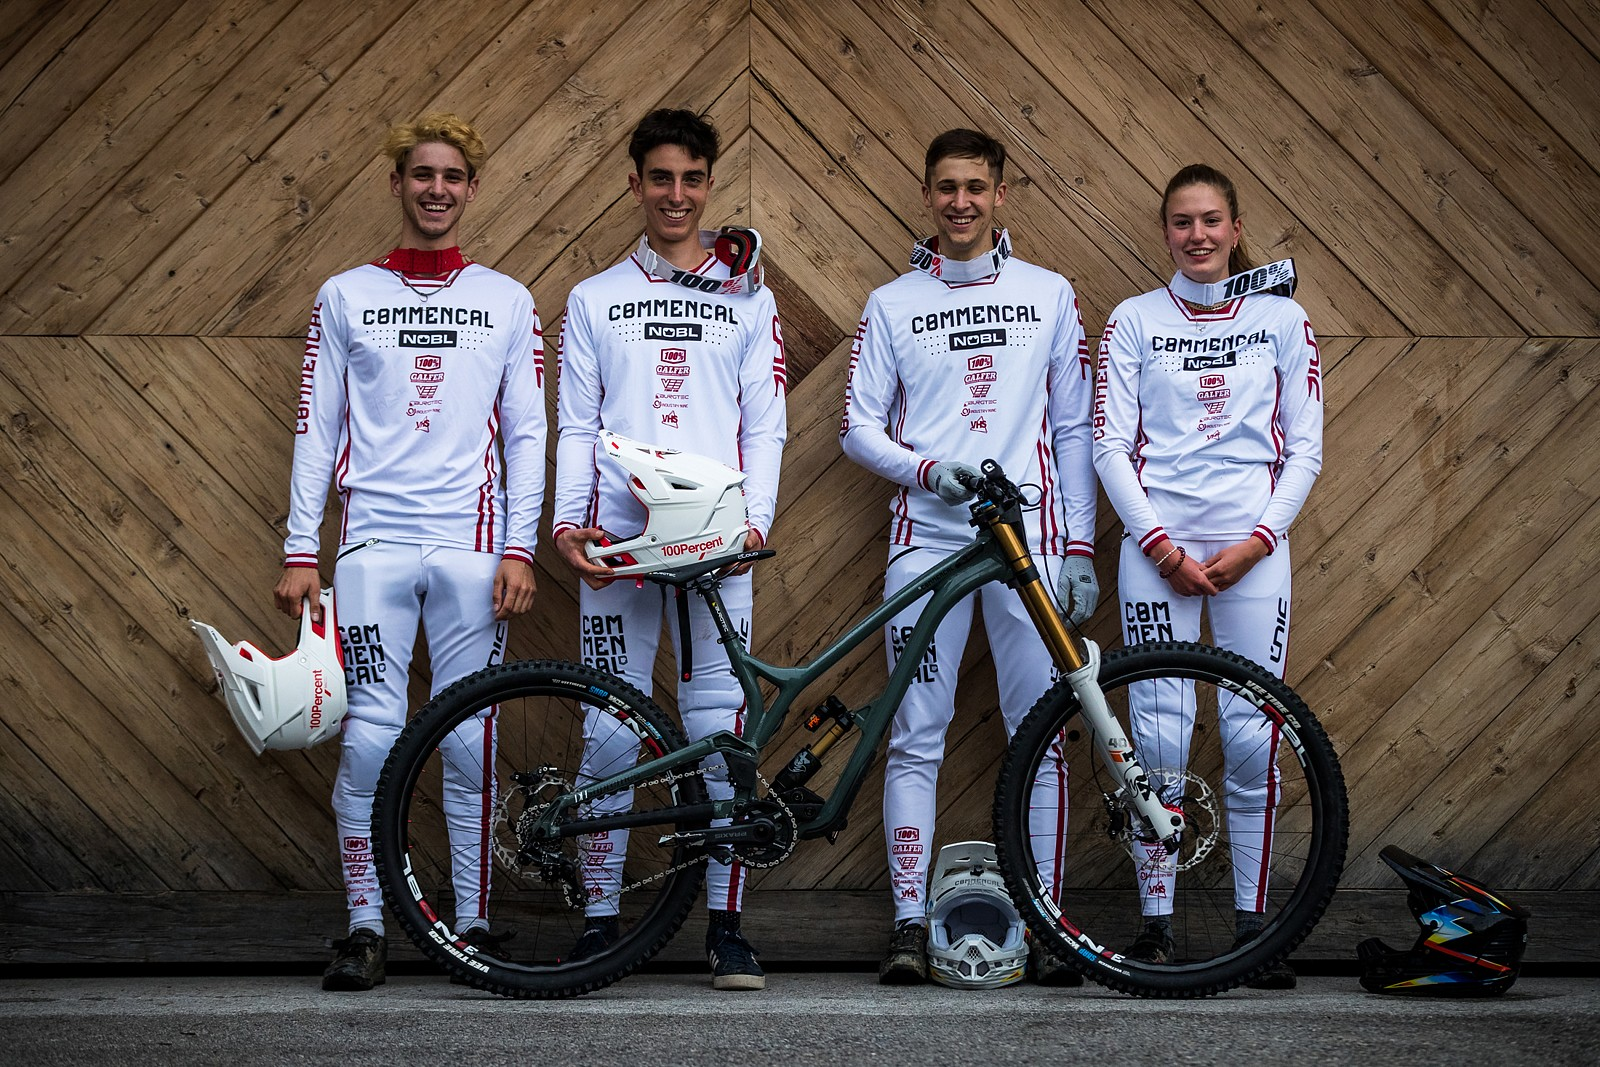 Commencal NOBL Squad - PIT BITS - Leogang World Cup Downhill 2021 - Mountain Biking Pictures - Vital MTB